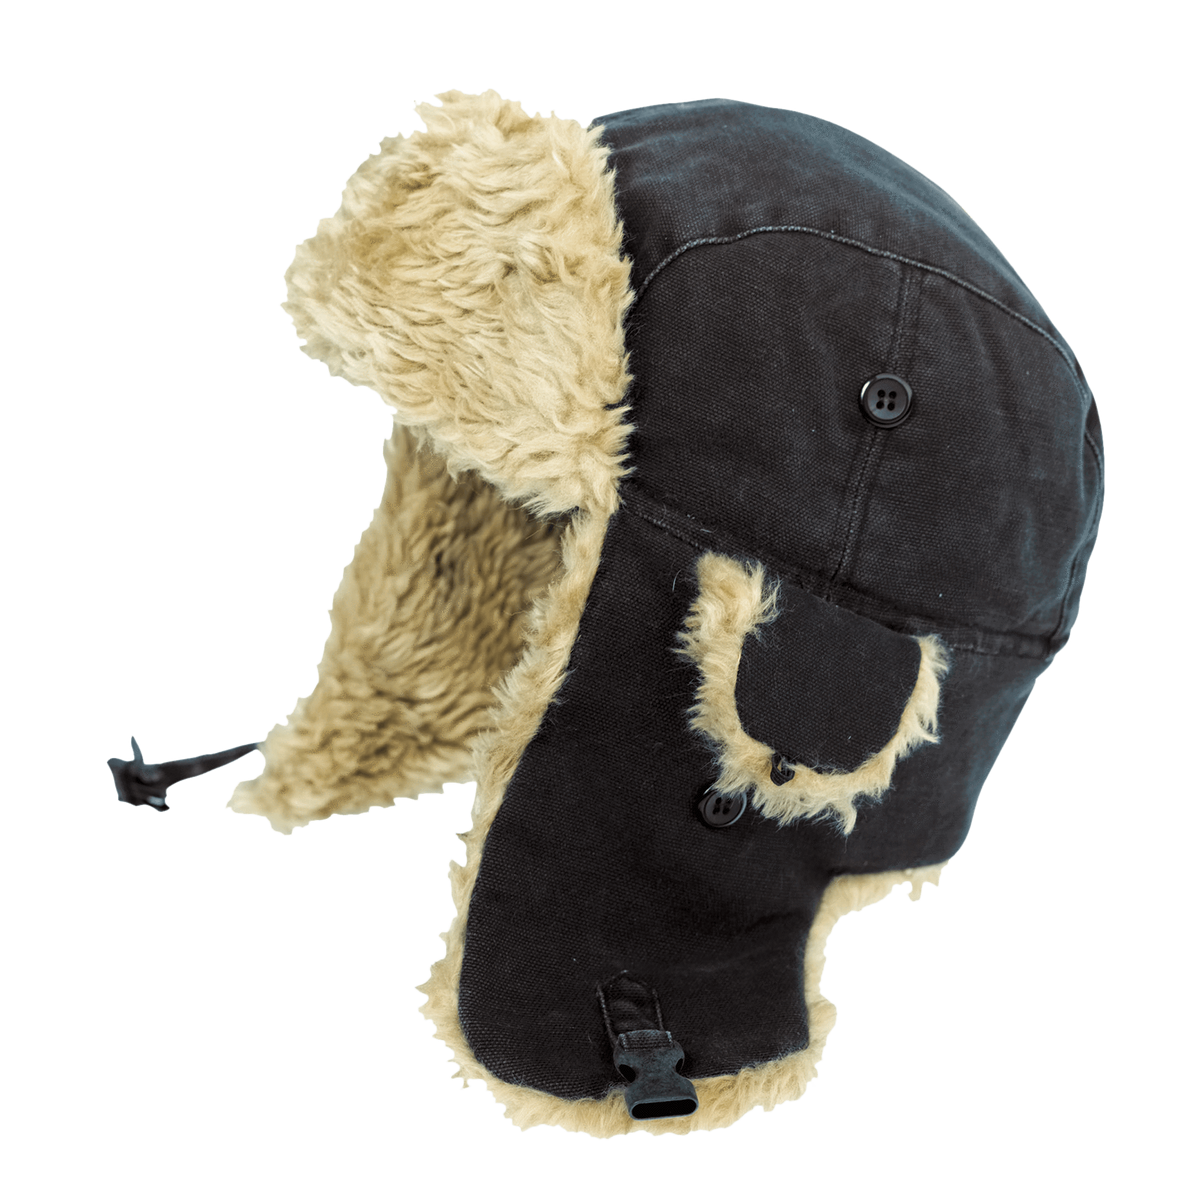 Tough Duck Aviator Hat | Black Work Gloves and Hats - Cleanflow